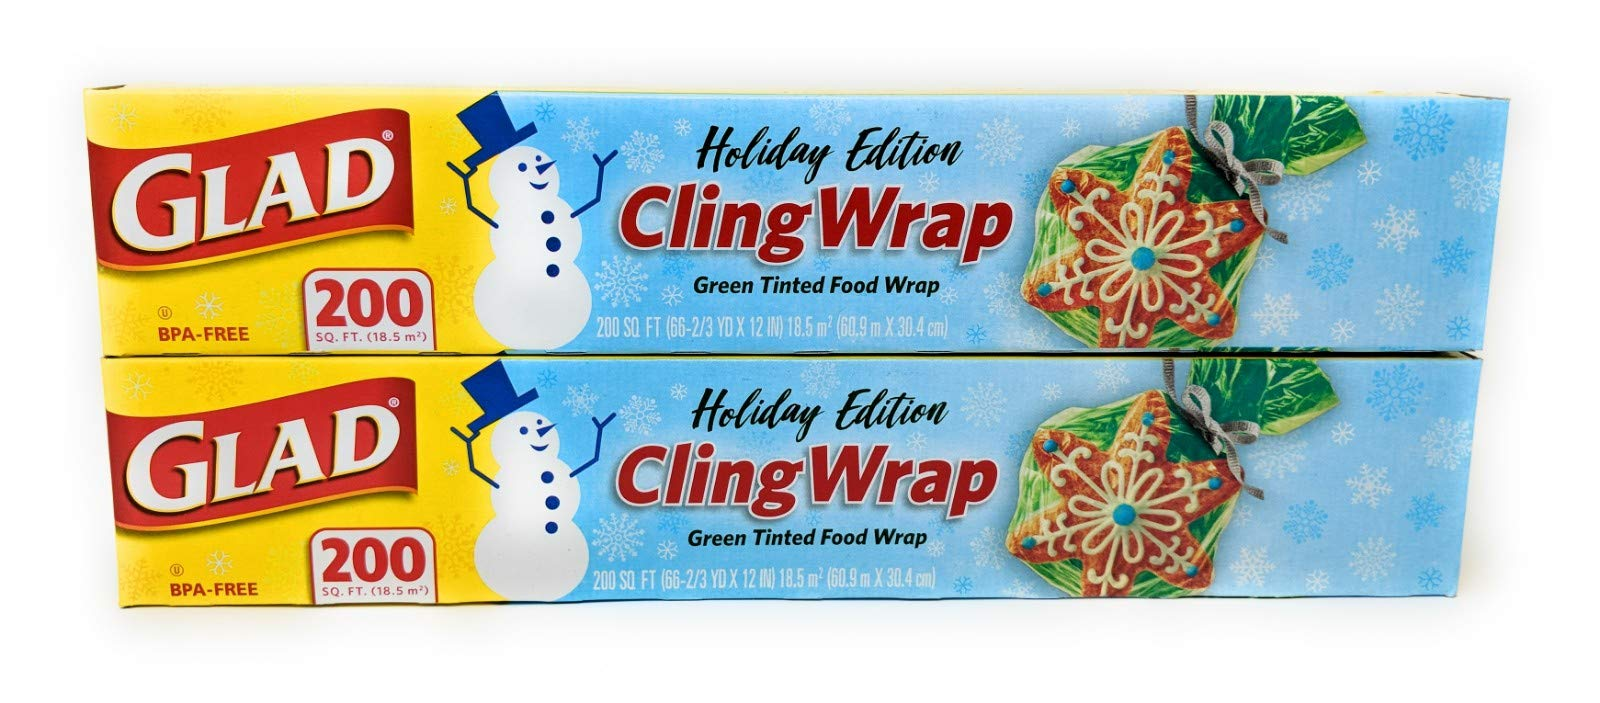 Glad Holiday Cling Wrap Plastic Wrap - Green - 200sq ft (Pack of 2) by Glad